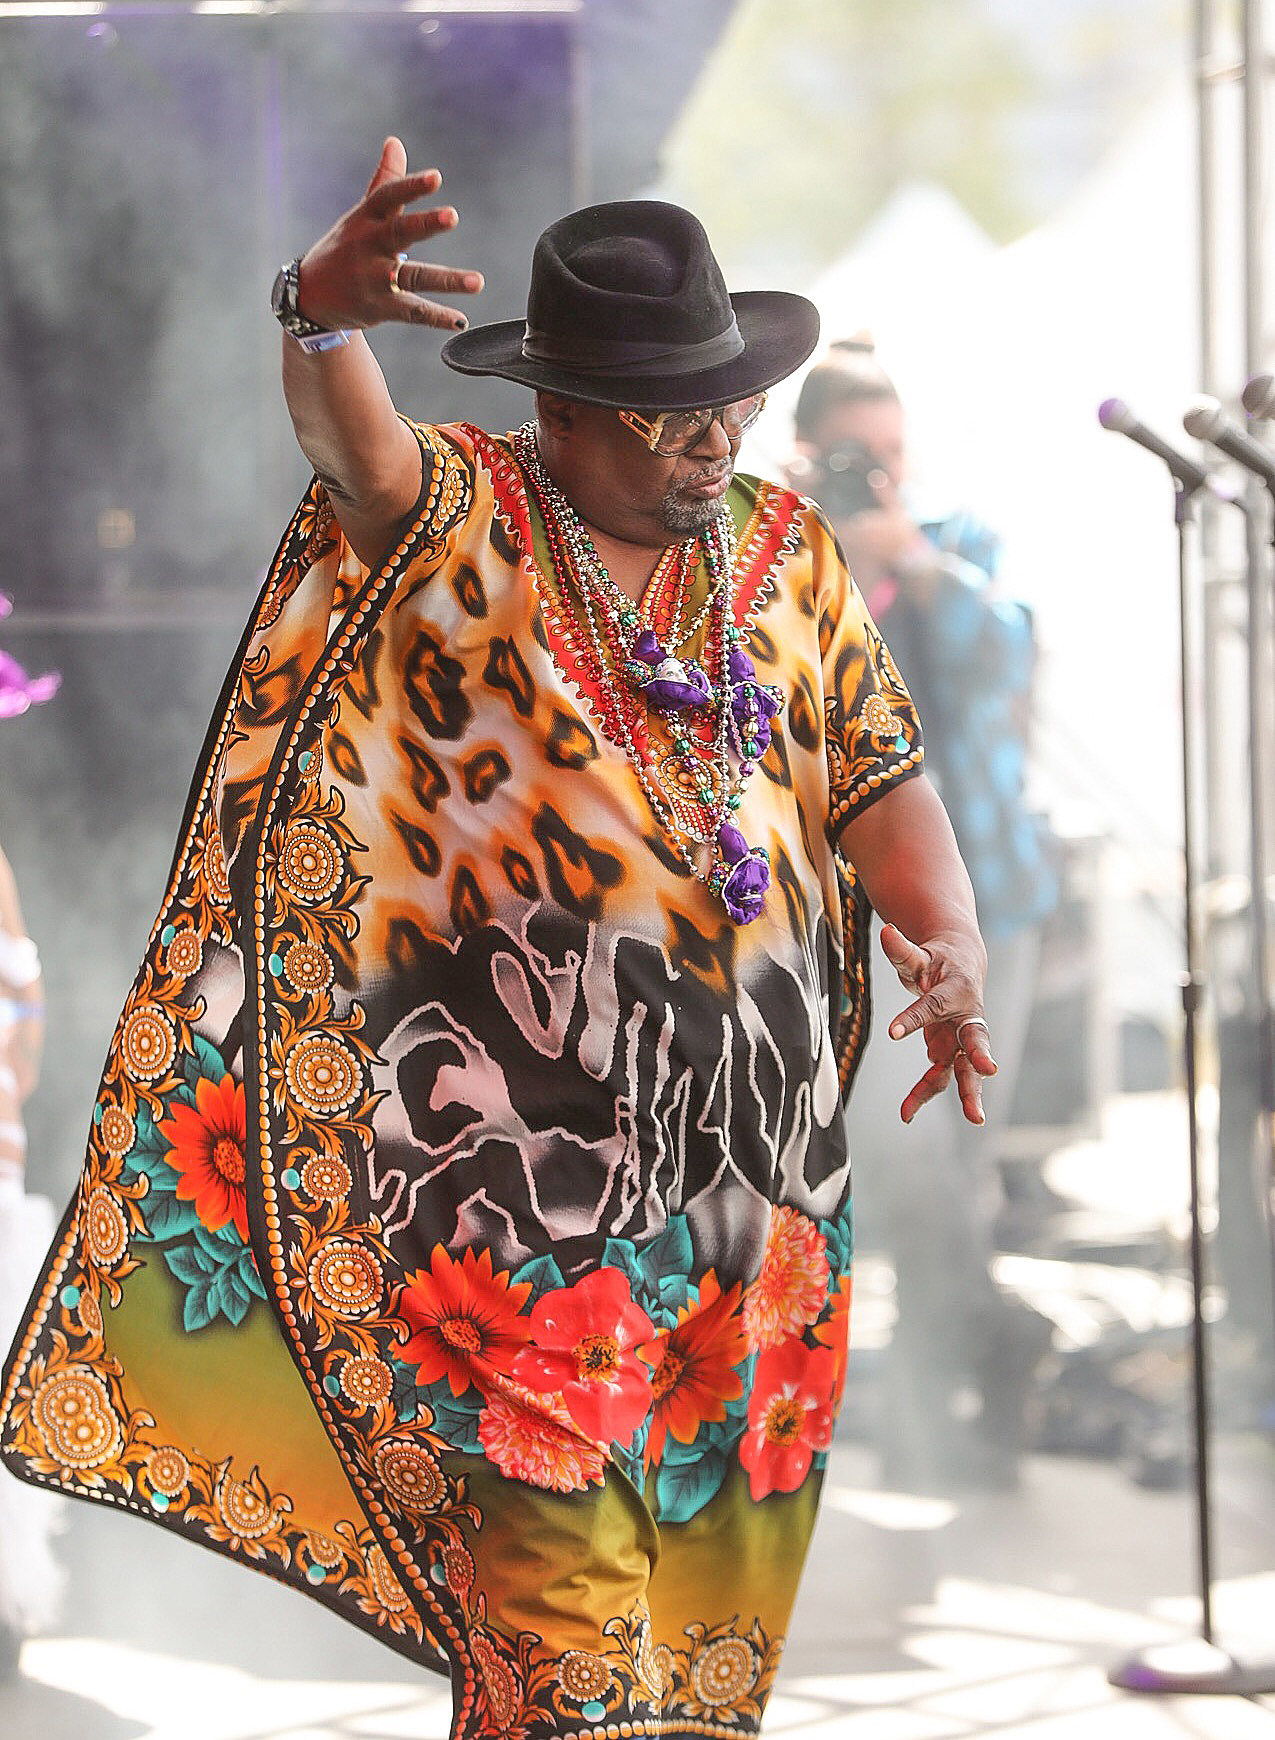 George Clinton at Okeechobee Festival